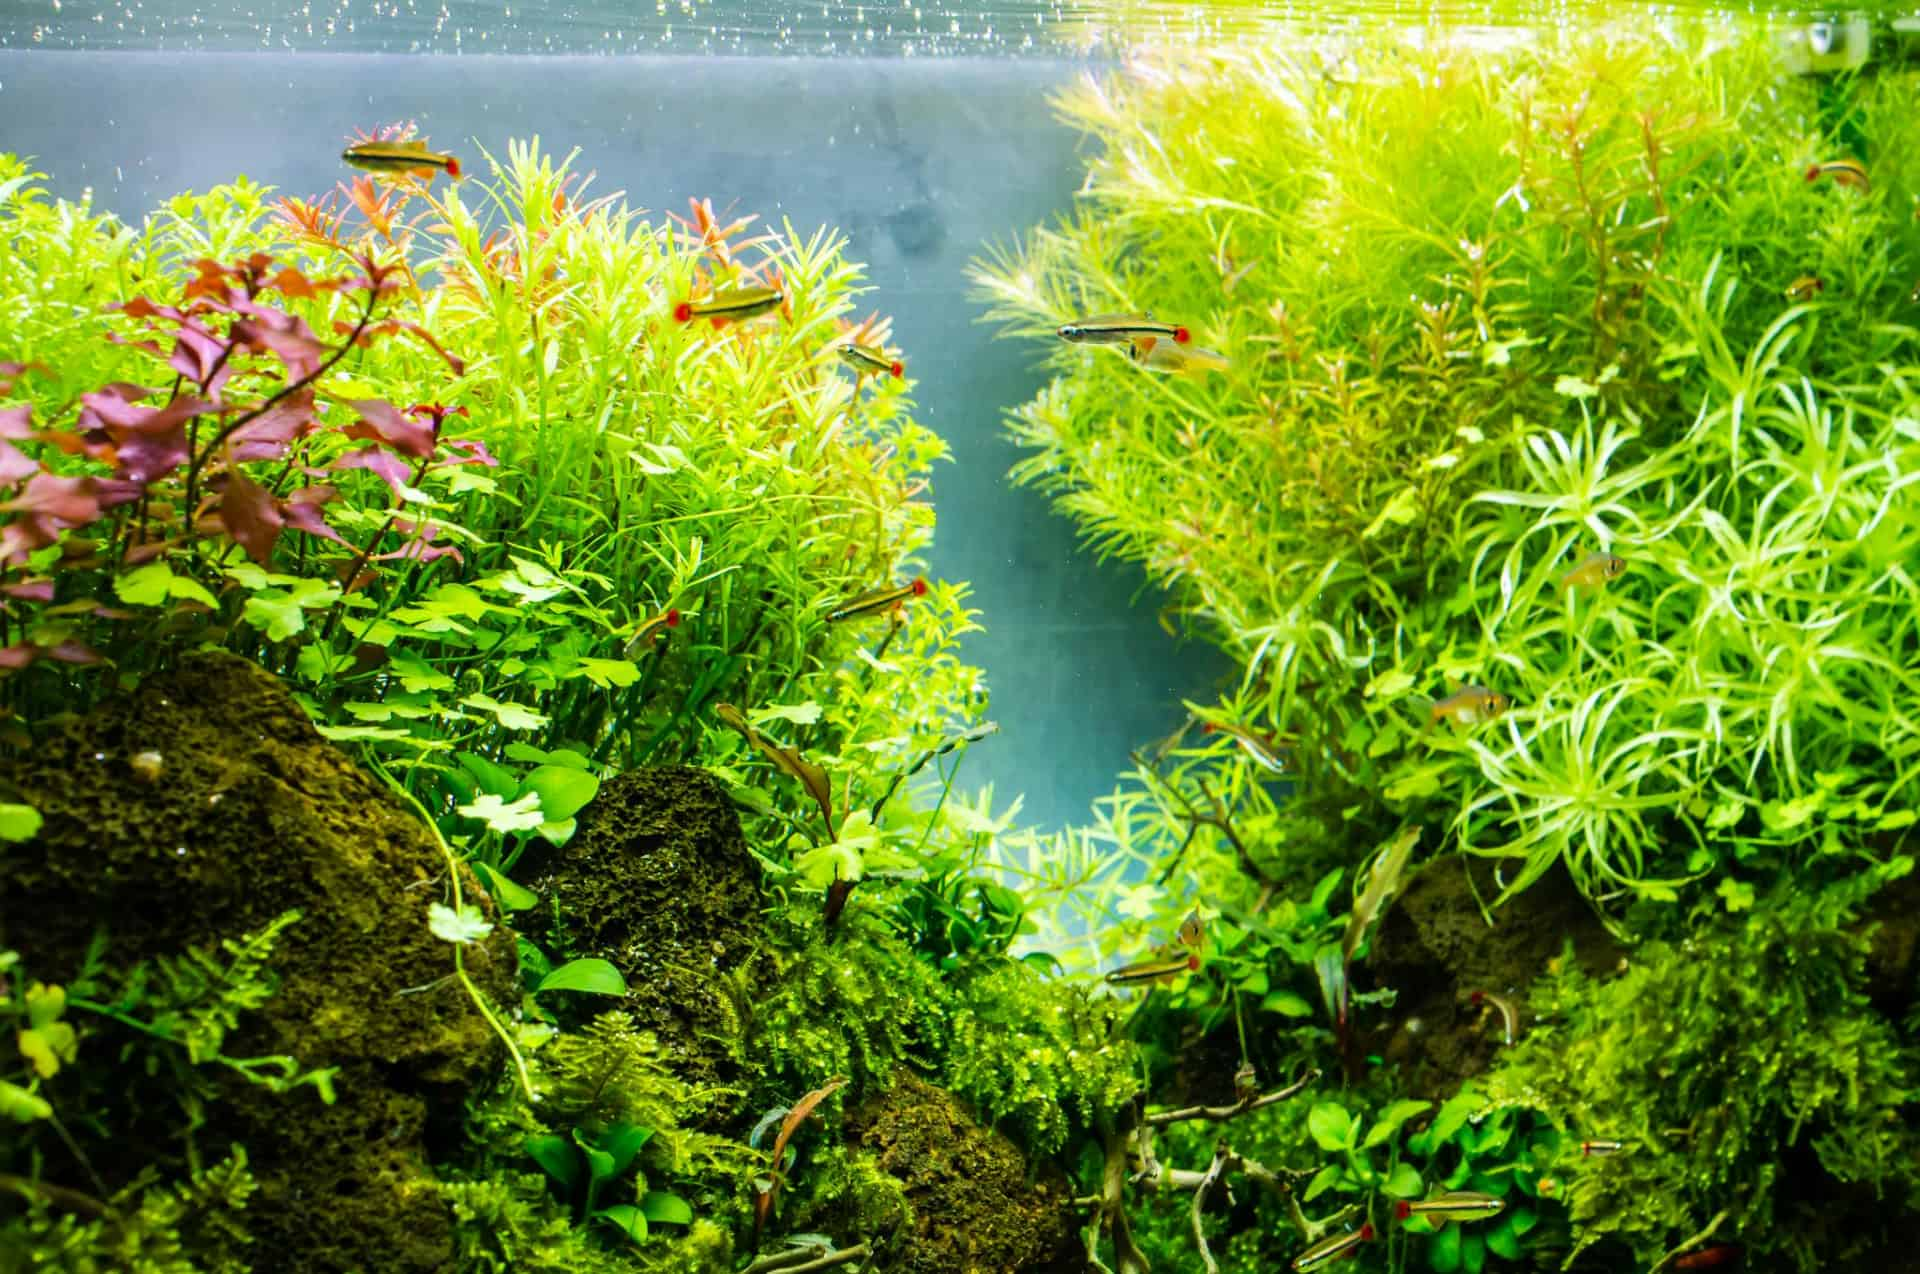 Low Light Aquarium Plants, Cost-Effective and Easy to Maintain